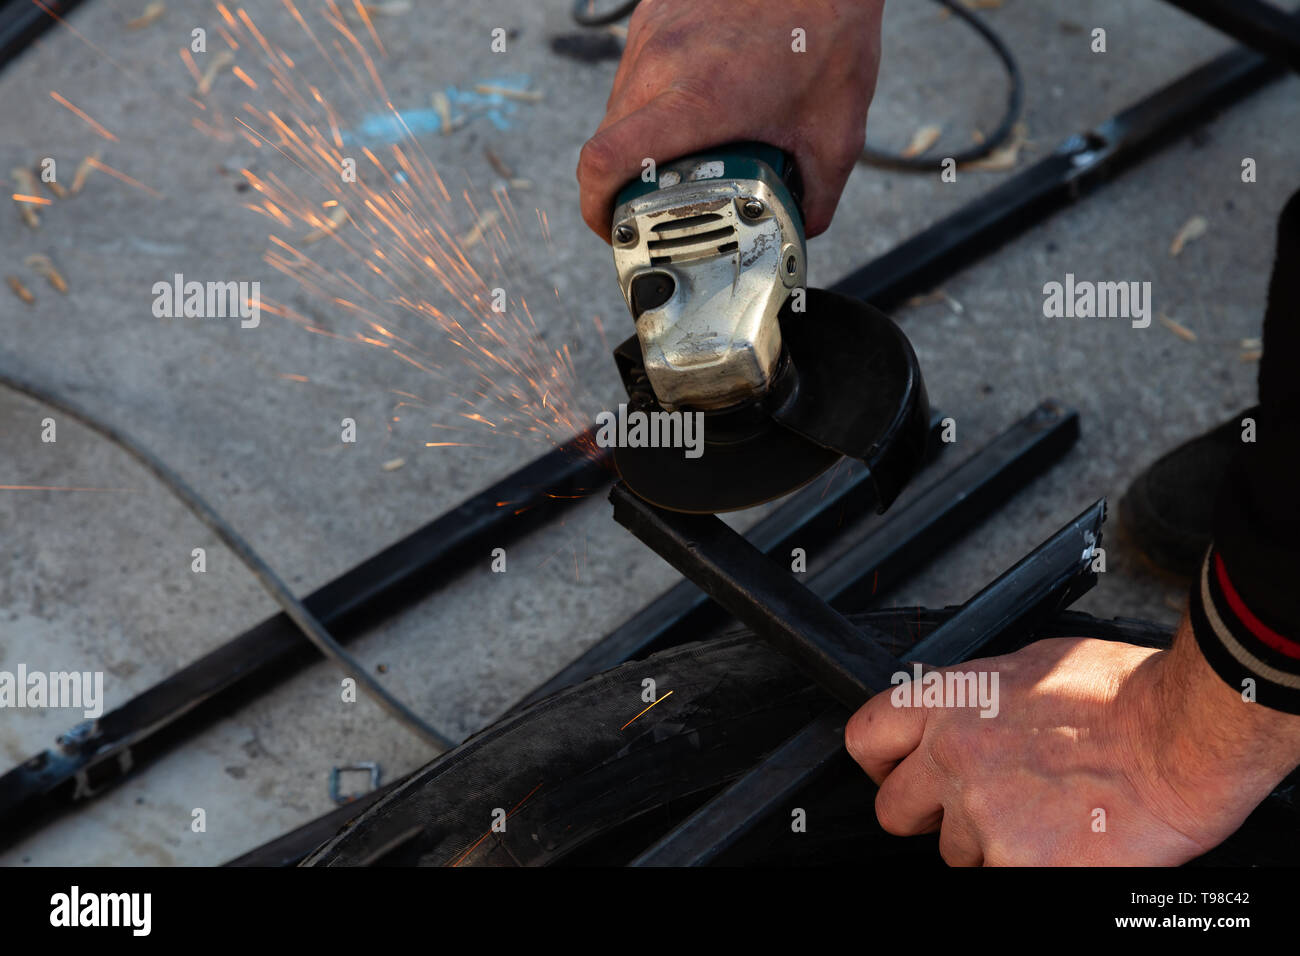 Close-up view strong man master without gloves on arms, performs metal cutting with an angle grinder in the garage workshop, blue and orange sparks fl - Stock Image